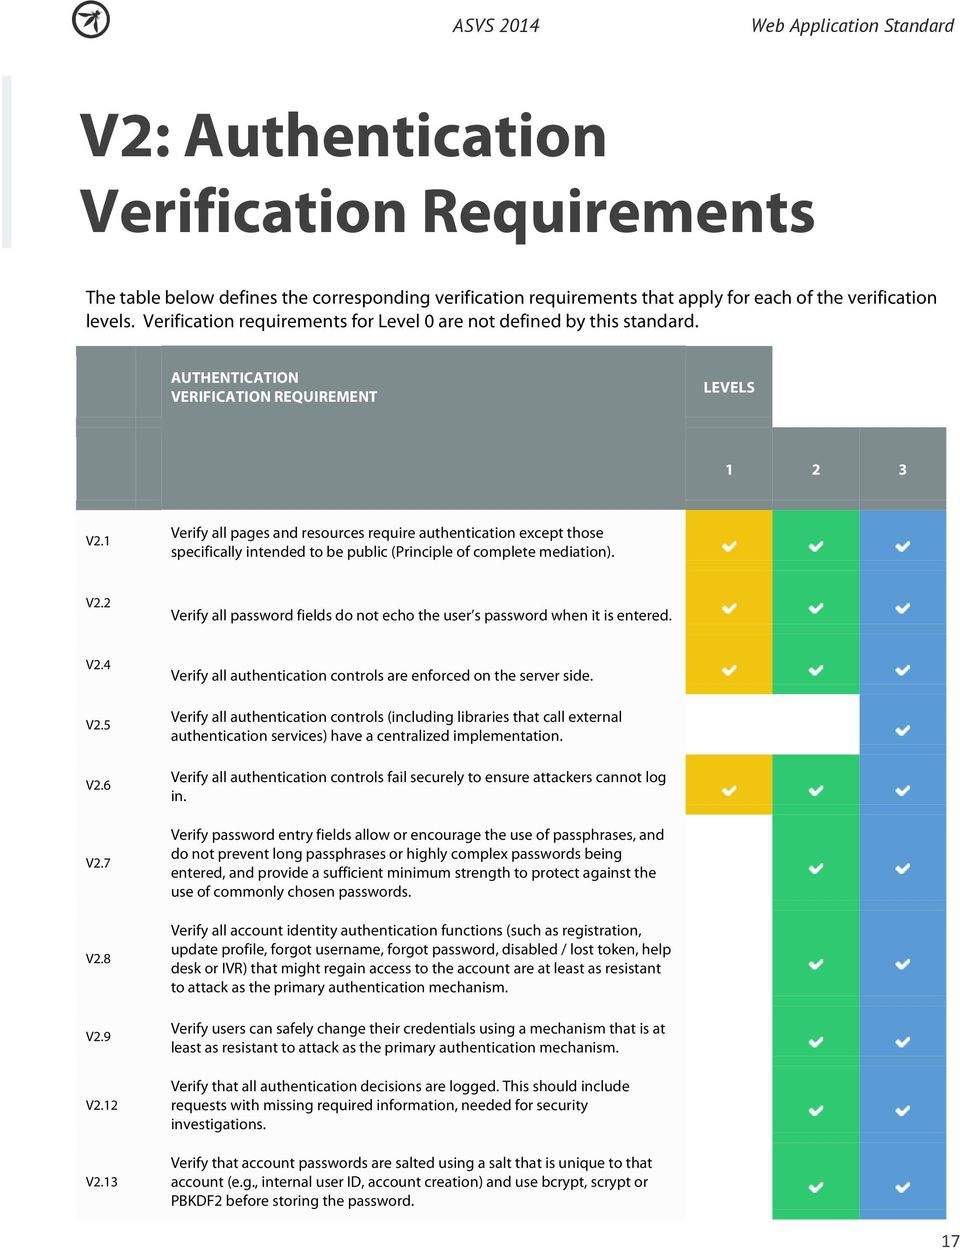 1 Verify all pages and resources require authentication except those specifically intended to be public (Principle of complete mediation). V2.